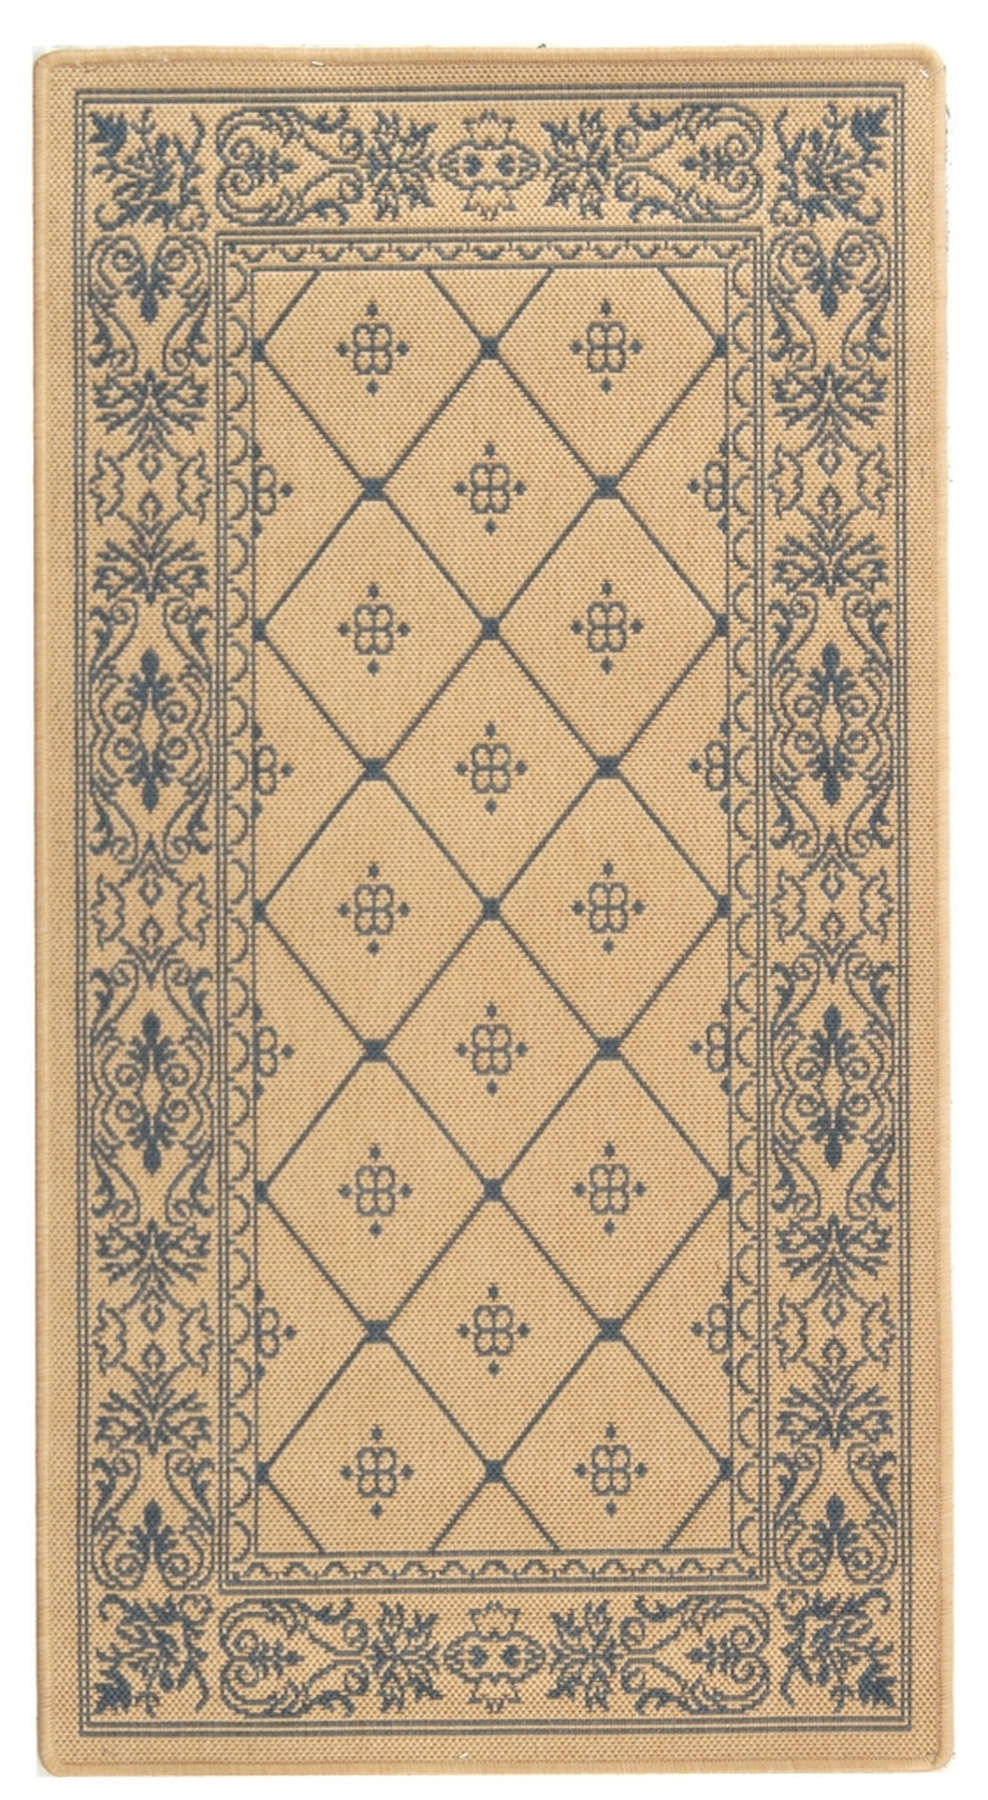 safavieh scroll rug safavieh acanthus scroll rug www bedbathandbeyond safavieh scroll. Black Bedroom Furniture Sets. Home Design Ideas